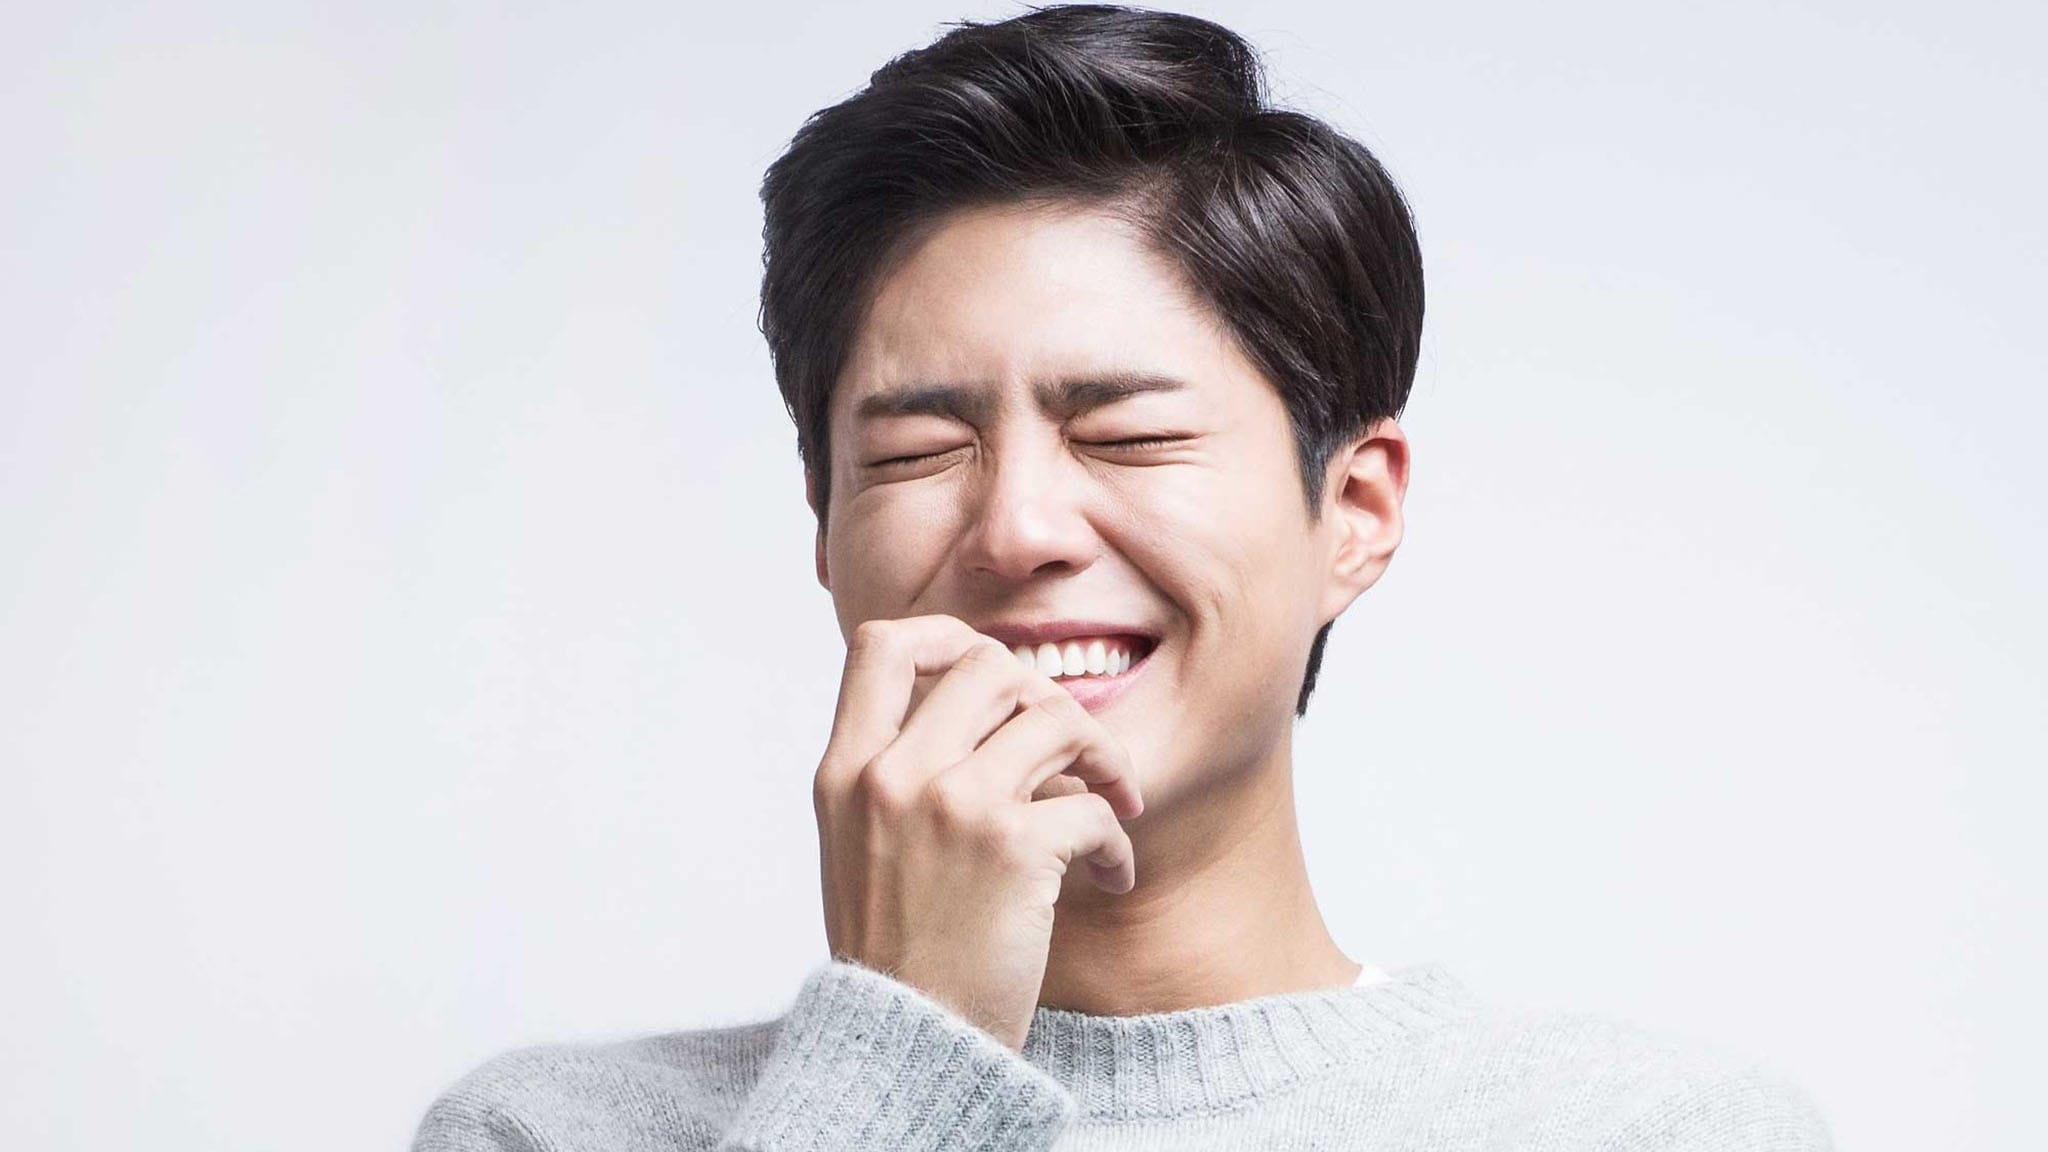 Park Bo Gum Revealed To Have Taken On Unexpected Role In University Musical Production